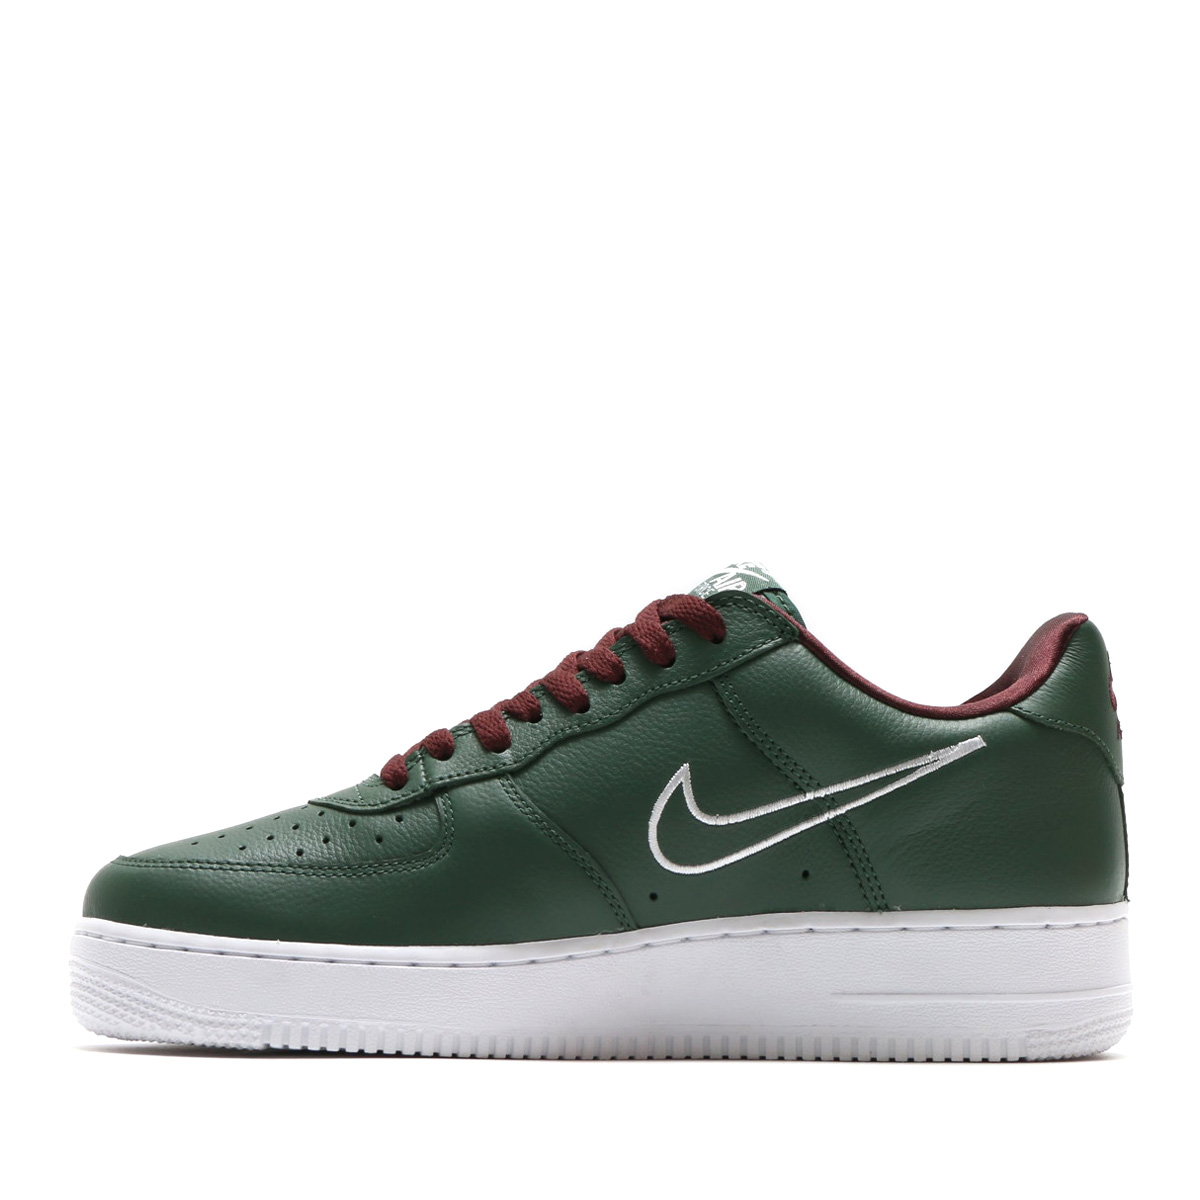 more photos ff875 4ce2c ... NIKE AIR FORCE 1 LOW RETRO (Nike air force 1 Lorre fatty tuna) ...